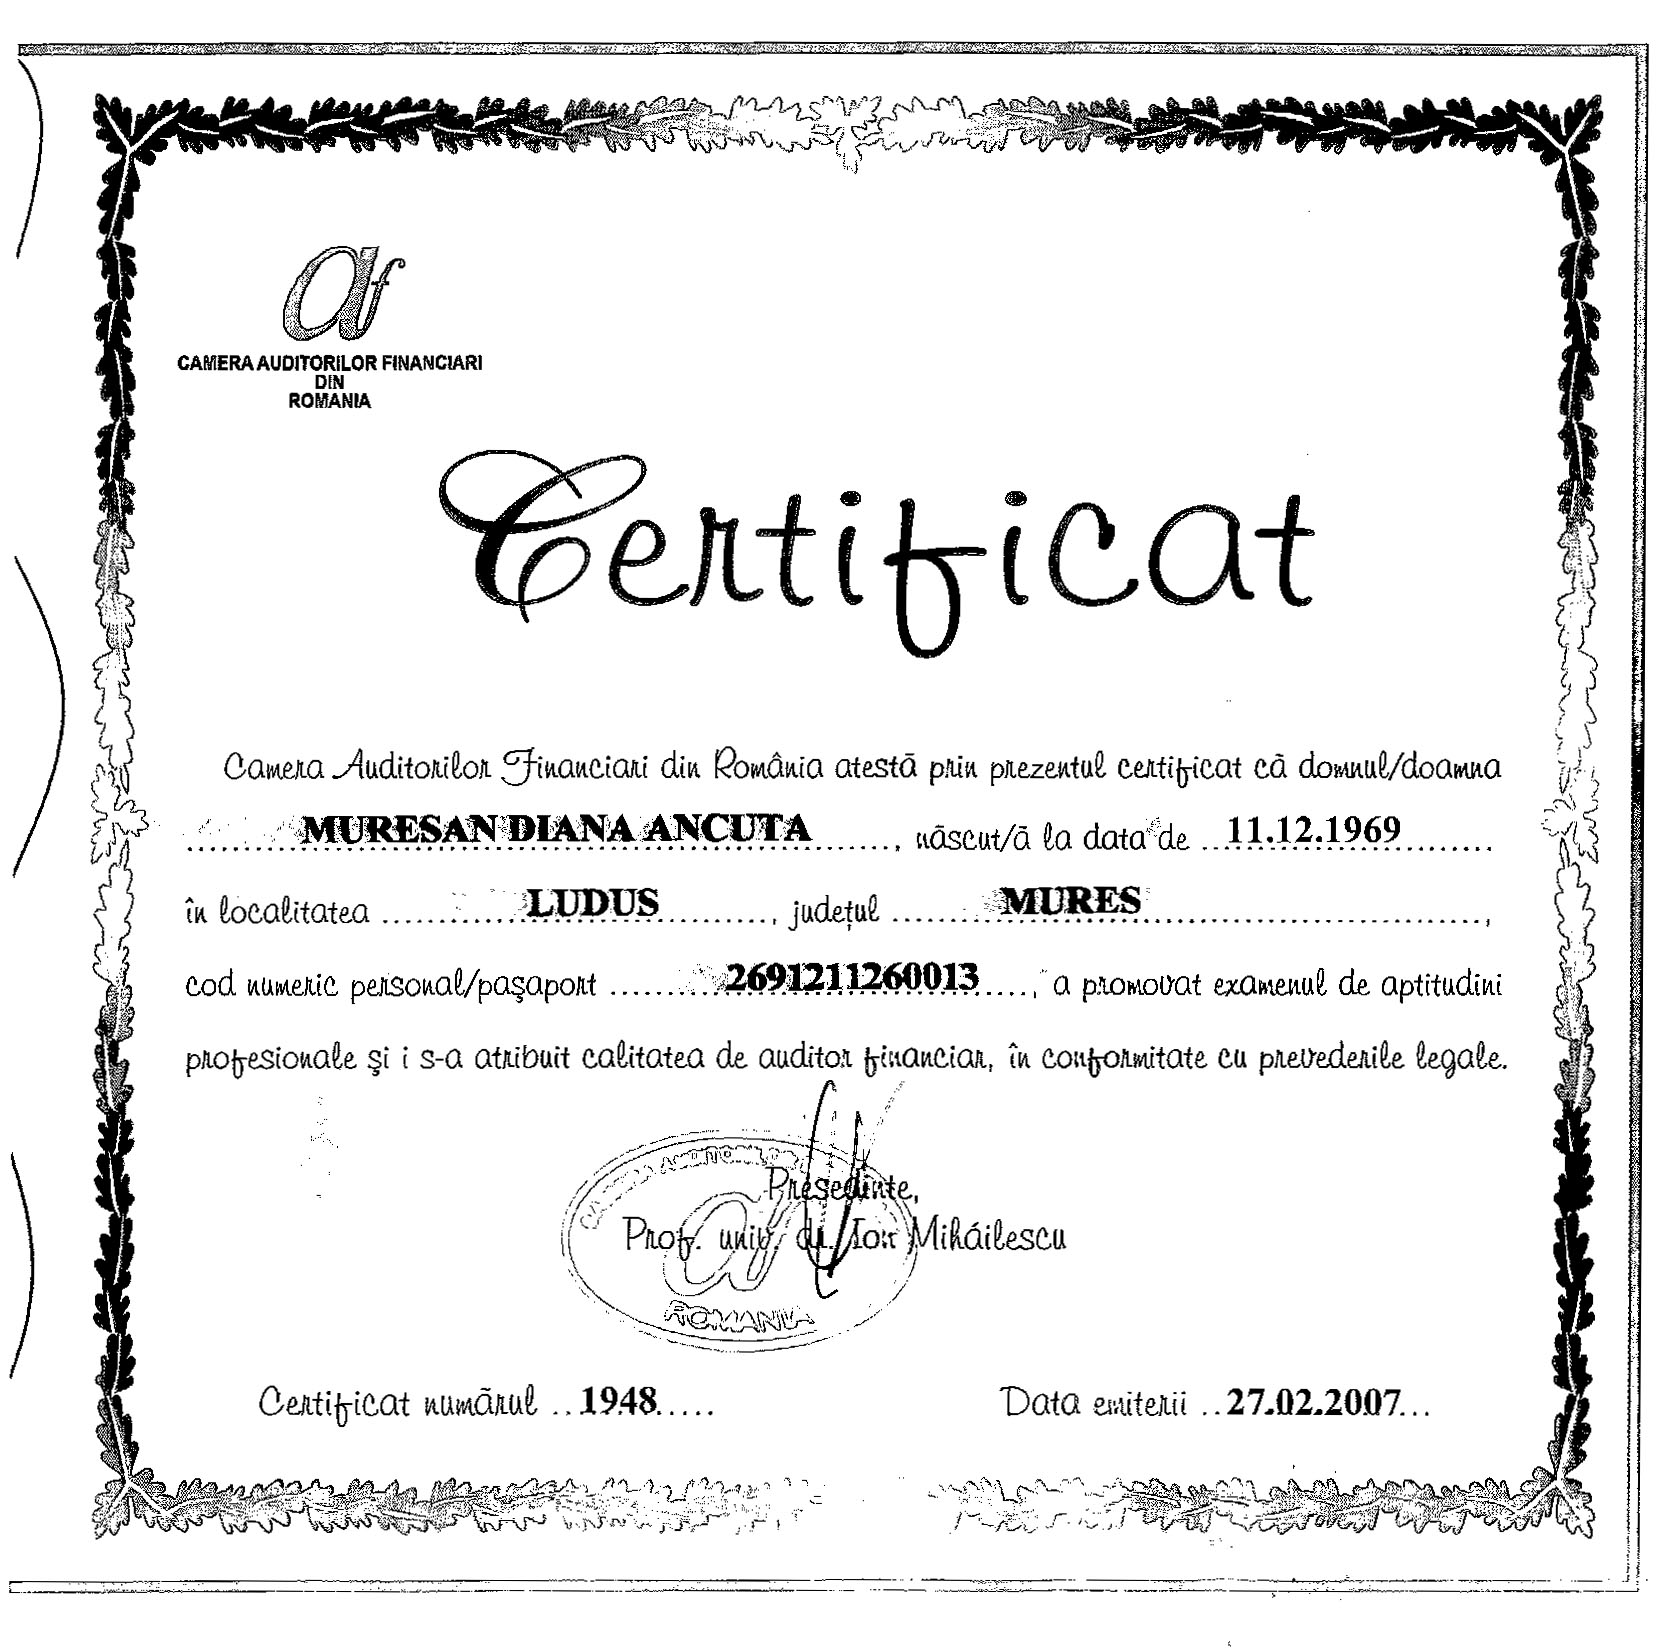 Certificat acreditare Camera Auditorilor Financiari din Romania